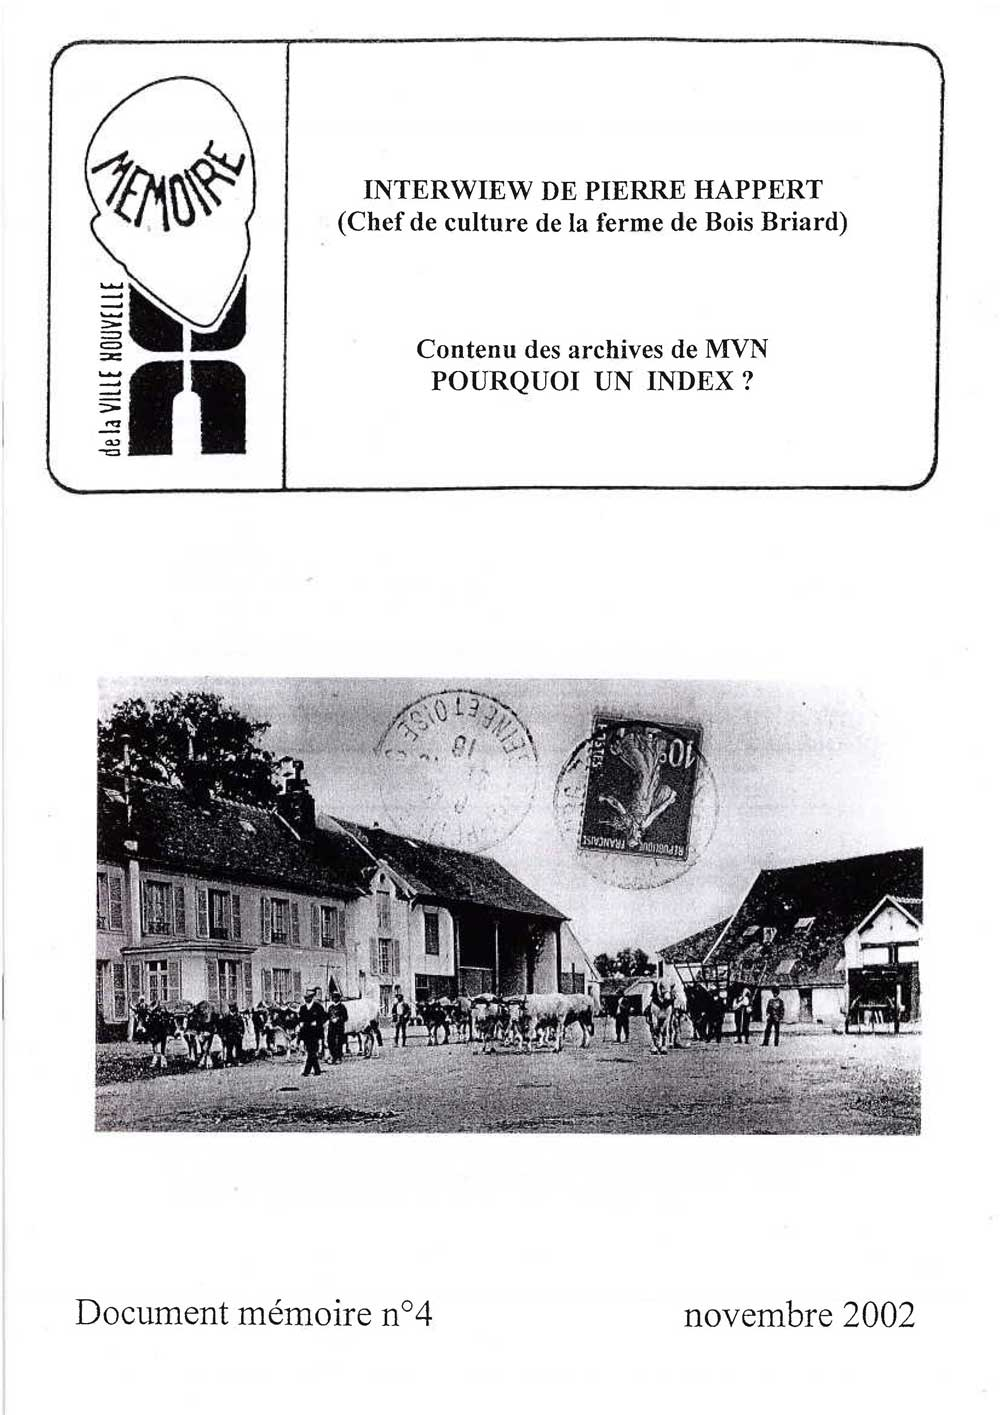 Document mémoire n°4 (2002)